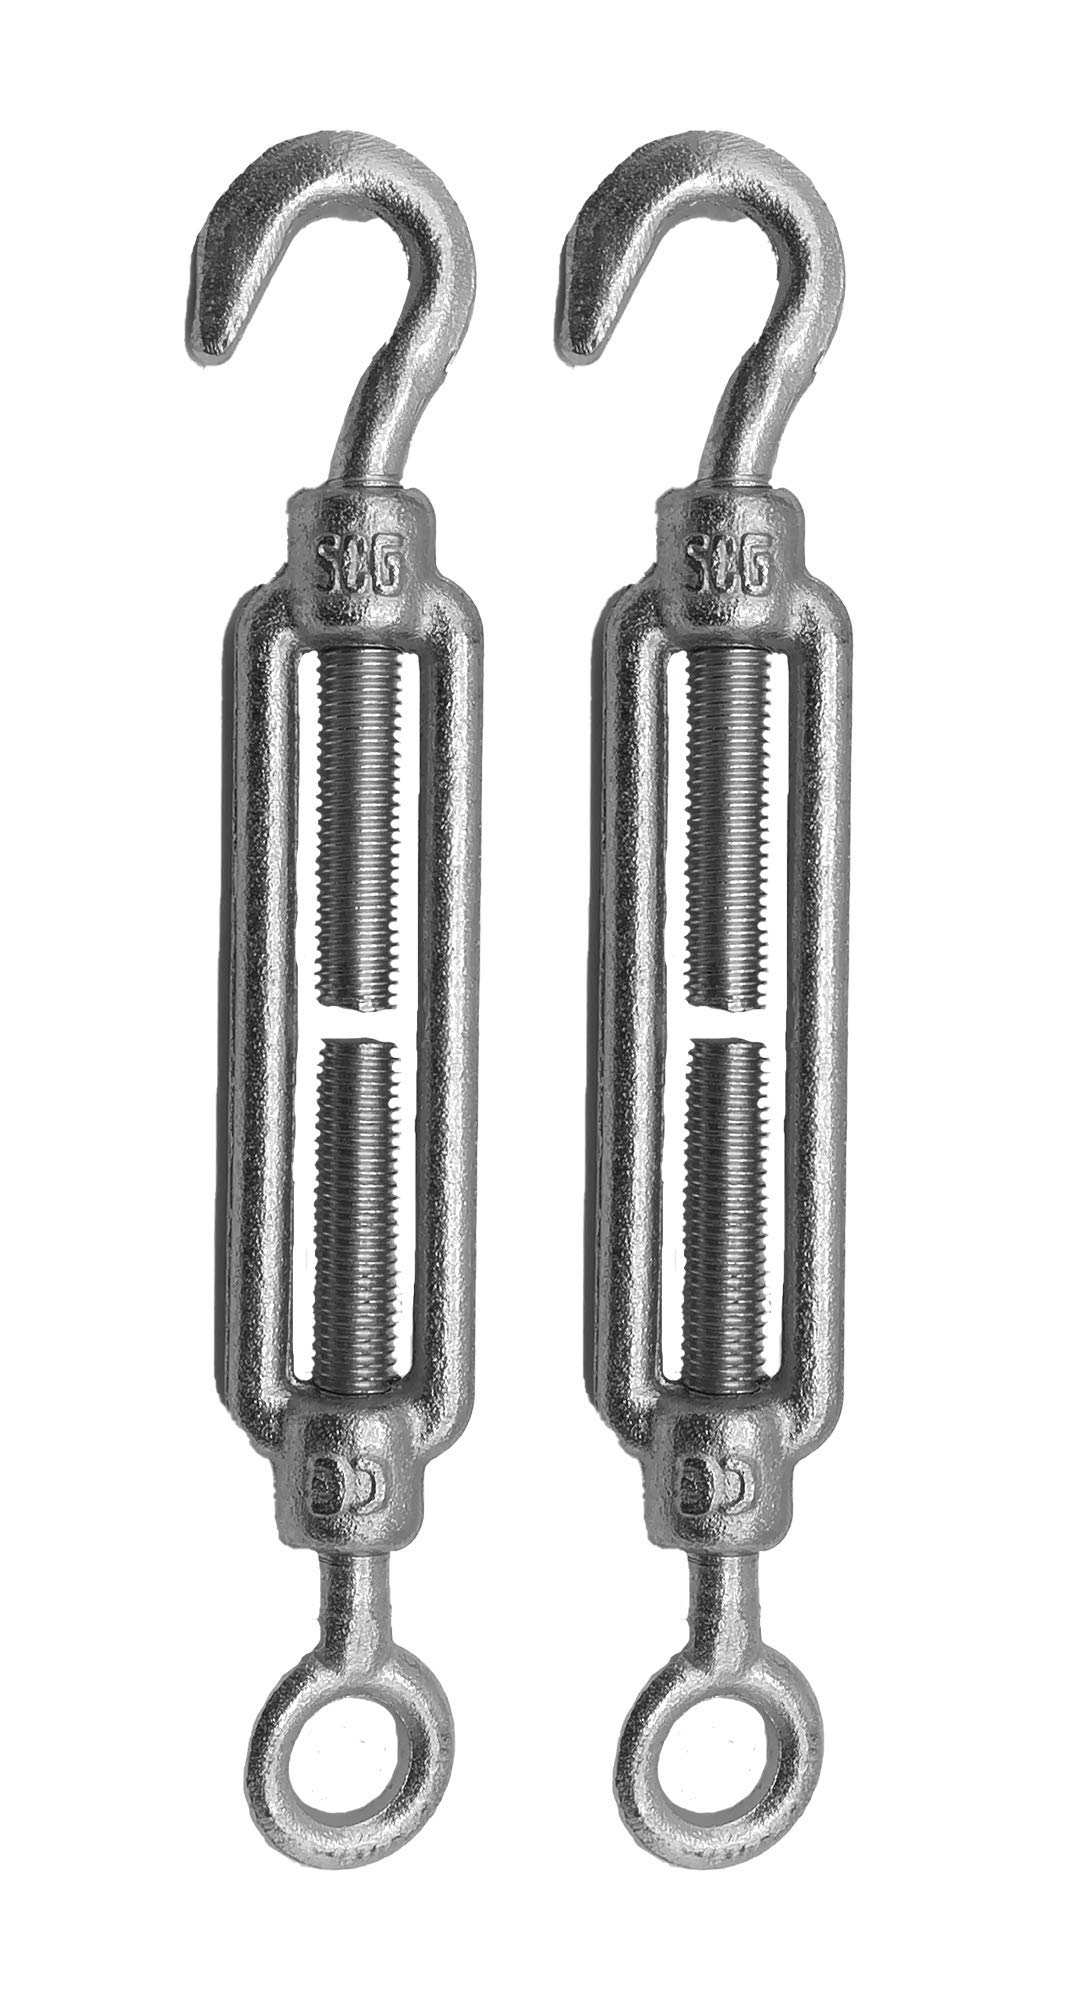 Wire Tensioner 6 x 110 mm Strainer M6 Stainless Steel DIN 1480 Hook Rope Cable Tension Heavy Duty 2 Pack of 2 pcs